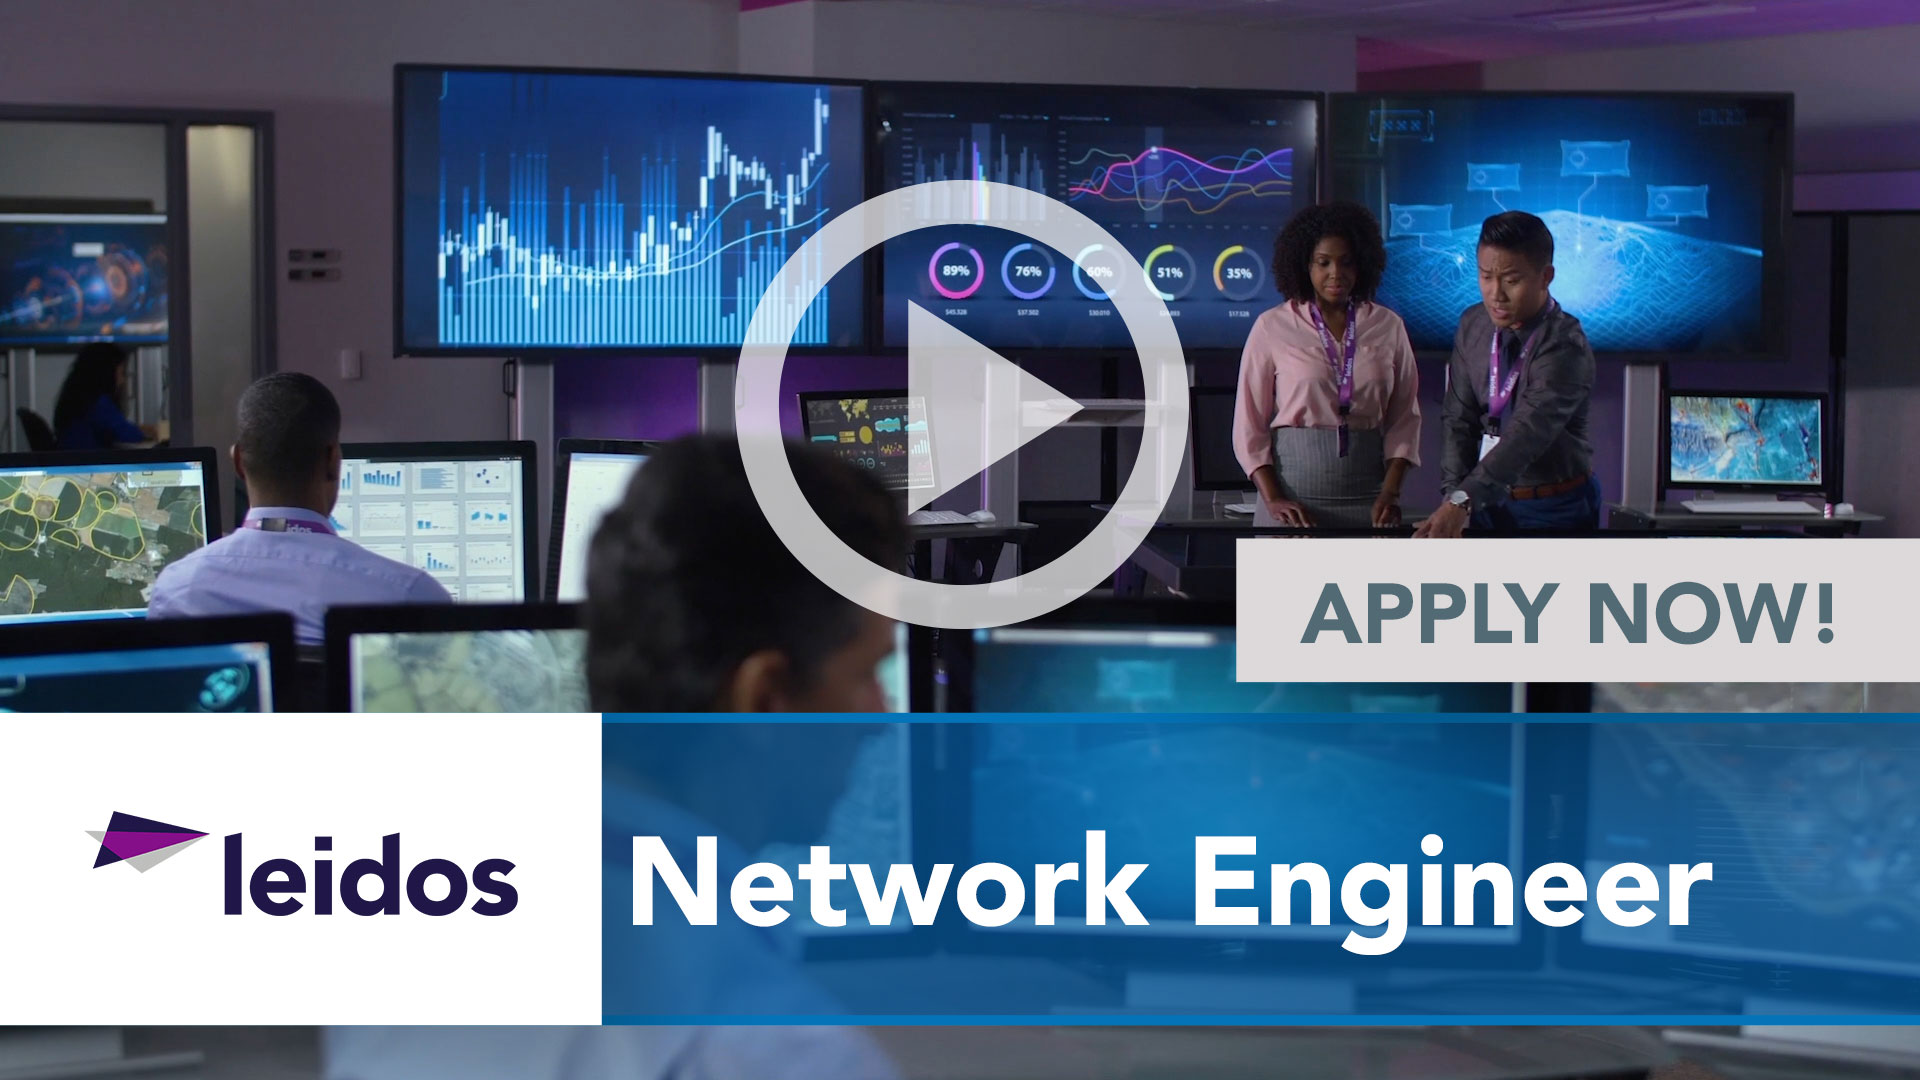 Watch our careers video for available job opening Network Engineer in National Capital Region with